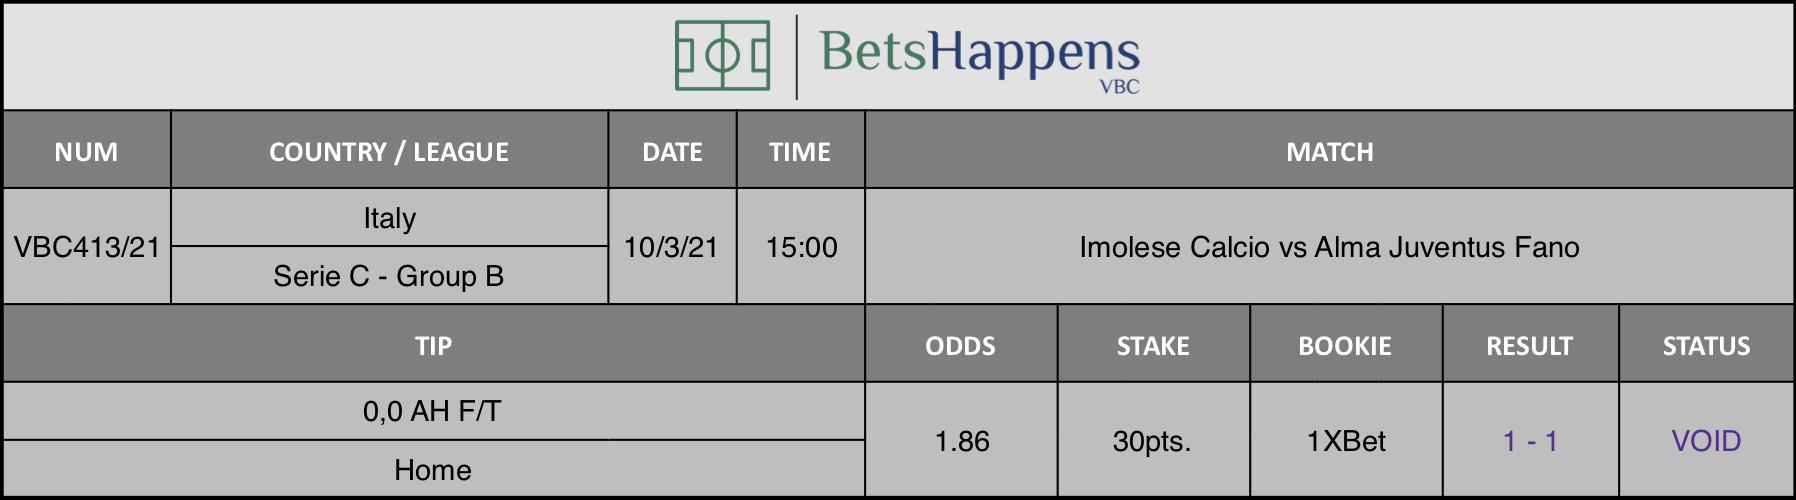 Results of our tip for the Imolese Calcio vs Alma Juventus Fano match where 0,0 AH F/T Home is recommended.